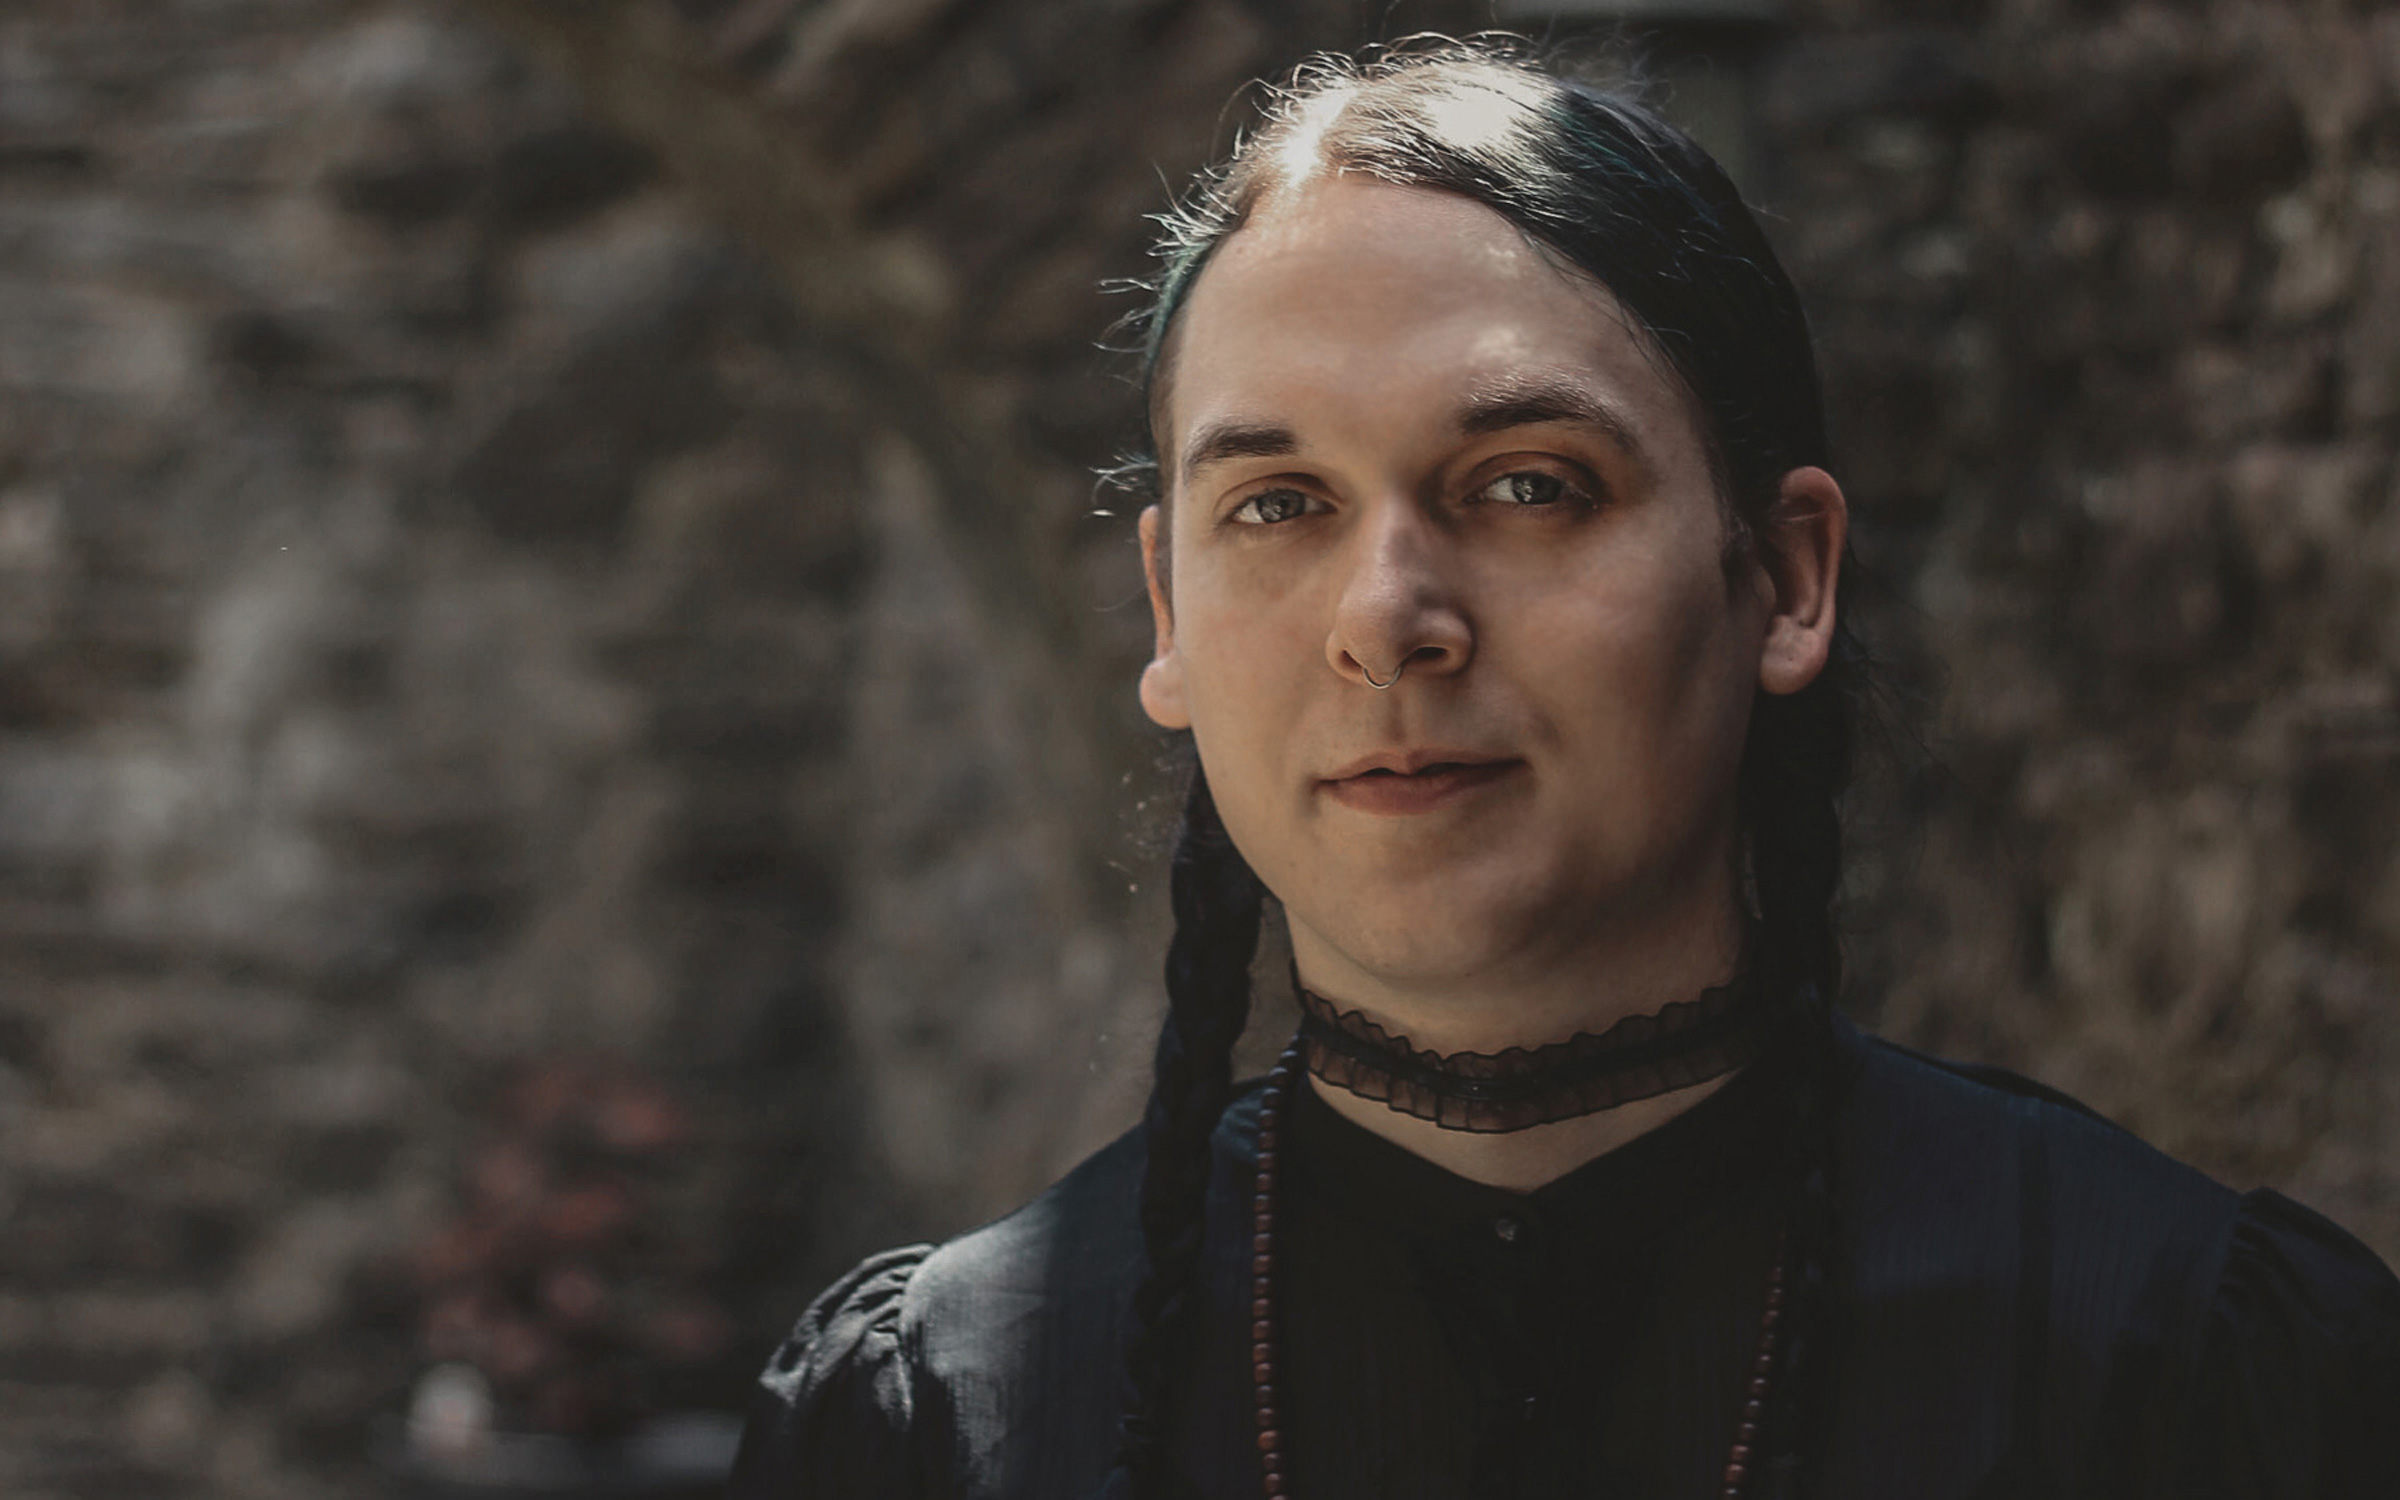 portrait of author and chef, Stacy Jane Grover, a white trans woman with braided hair, wearing a black blouse and a long beaded necklace standing in front of a stone archway